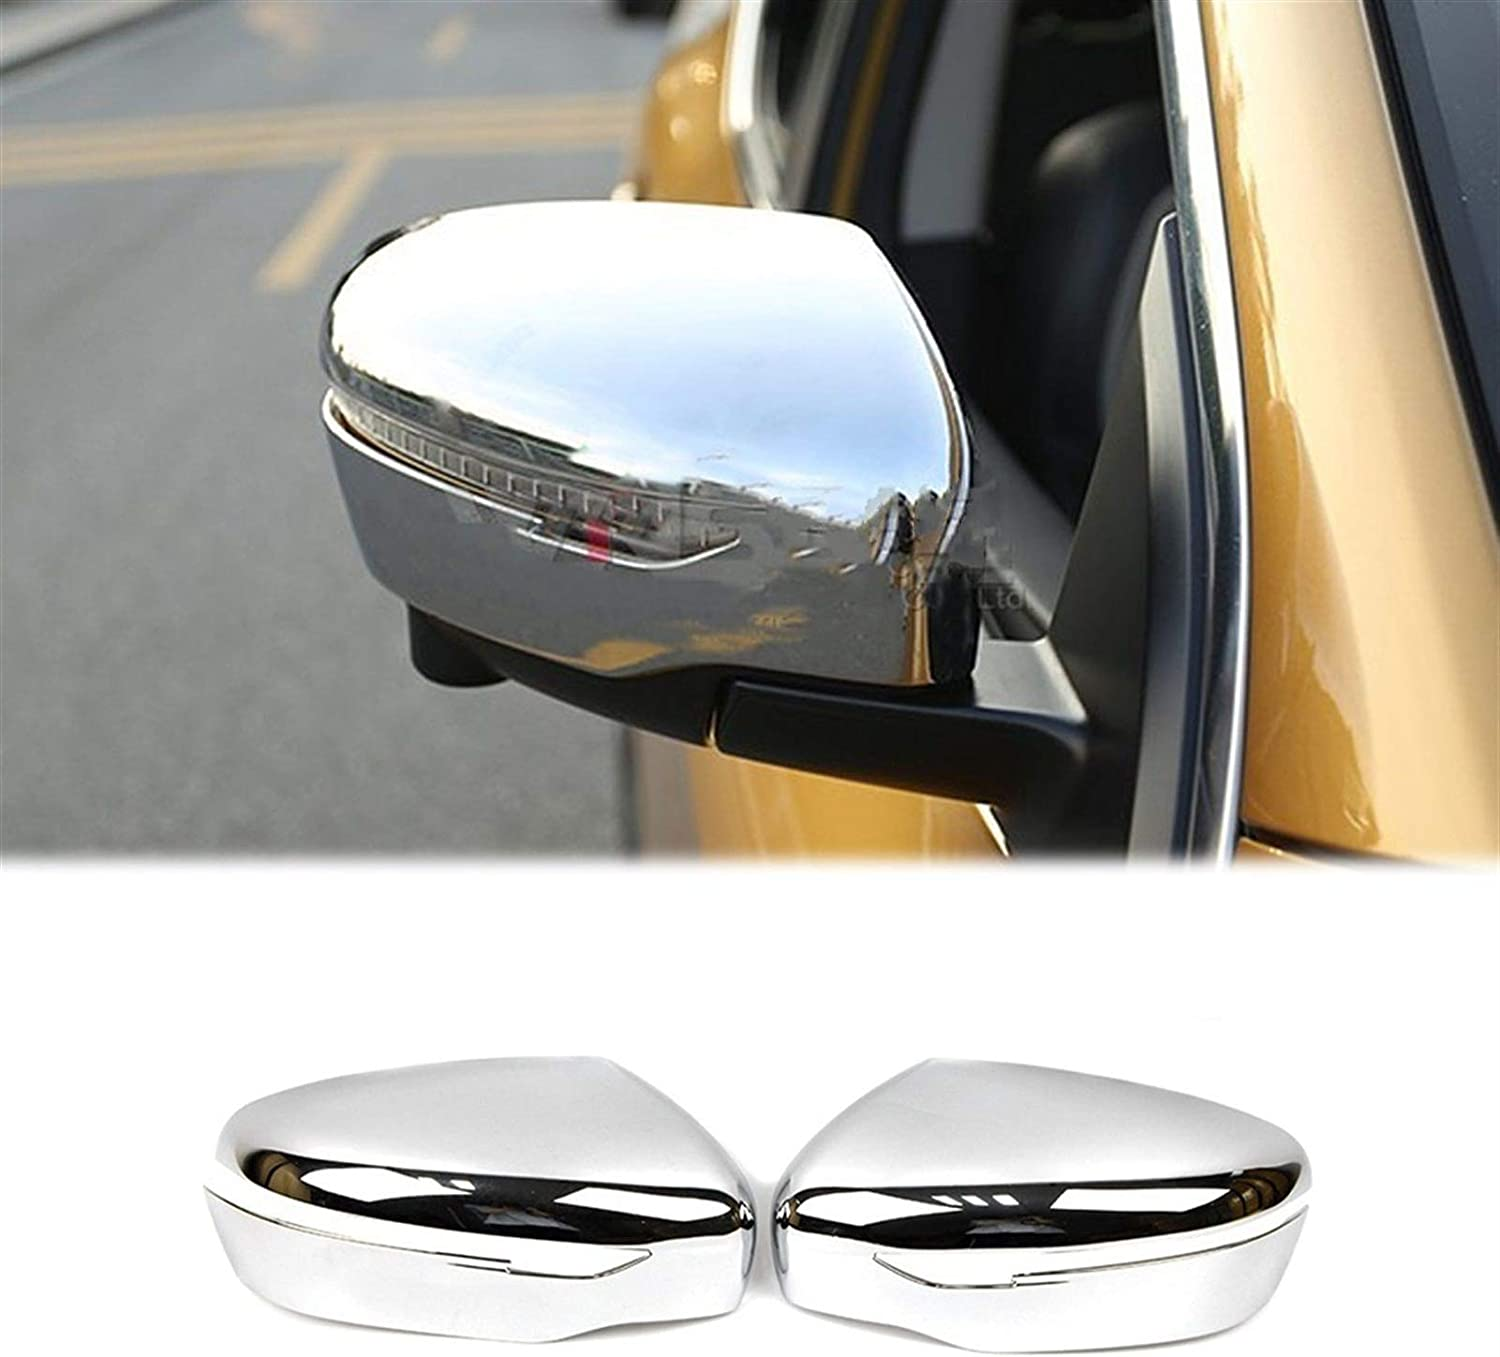 KCSAC Rearview Side Wing Mirror Cover Fit For Nissan Navara NP300 D23 2015 2016 2017 2018 Exterior Side Mirror Overlay Chrome Molding Trim